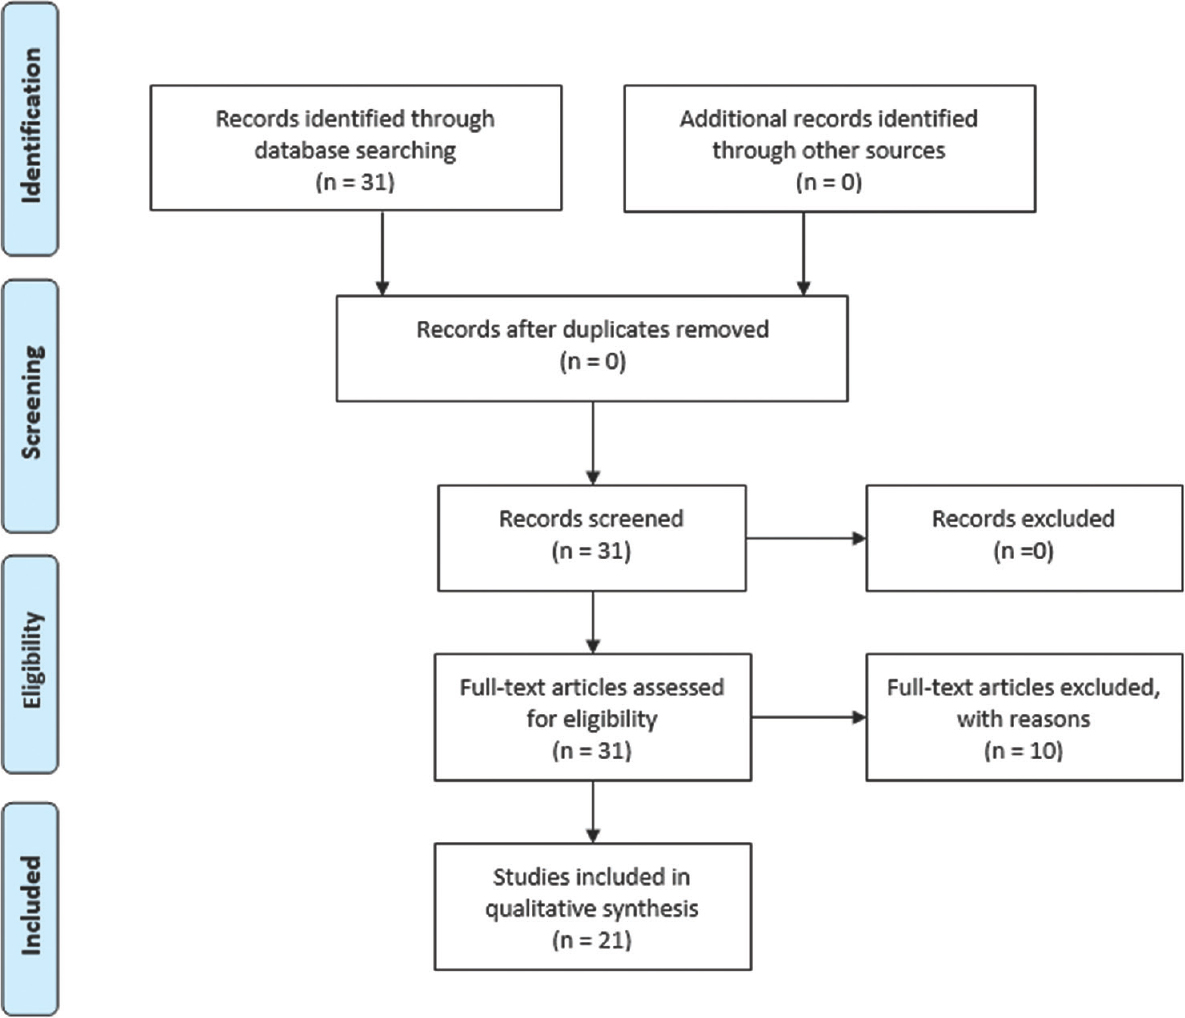 Figure 1: PRISMA flow diagram reports the decision algorithm for the selection of the studies of the systematic review